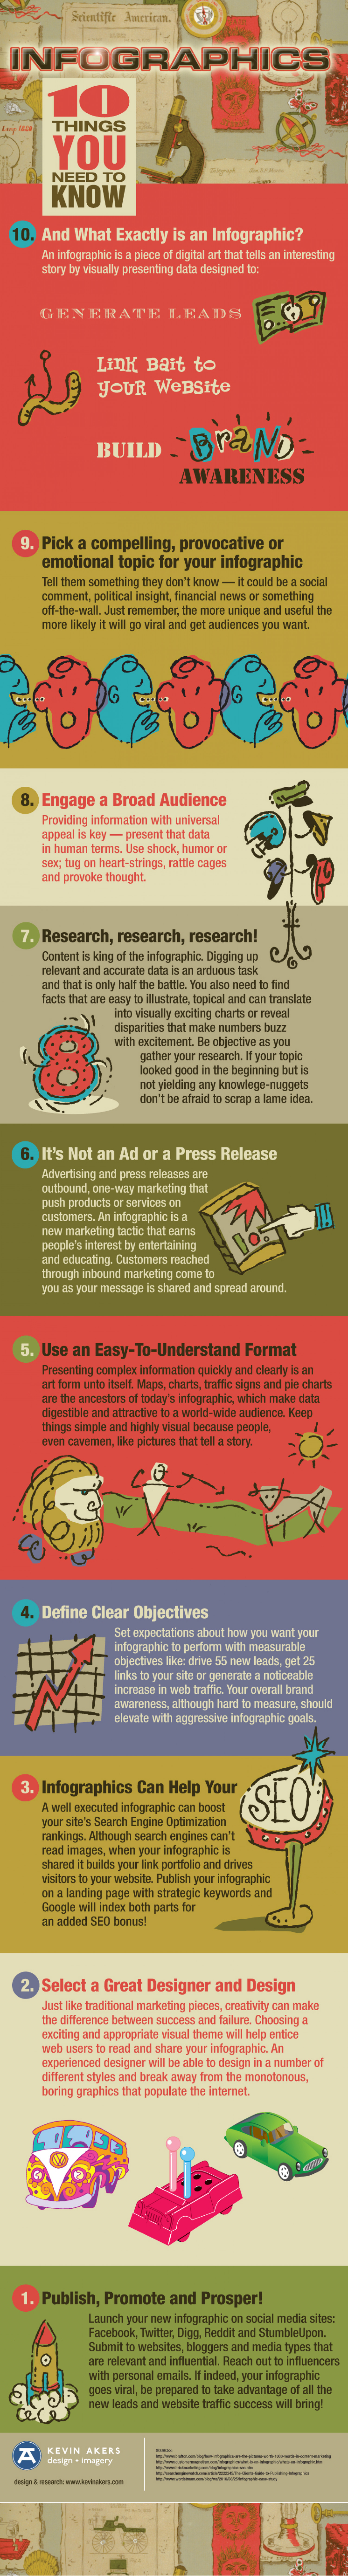 INFOGRAPHICS: 10 THINGS YOU NEED TO KNOW Infographic